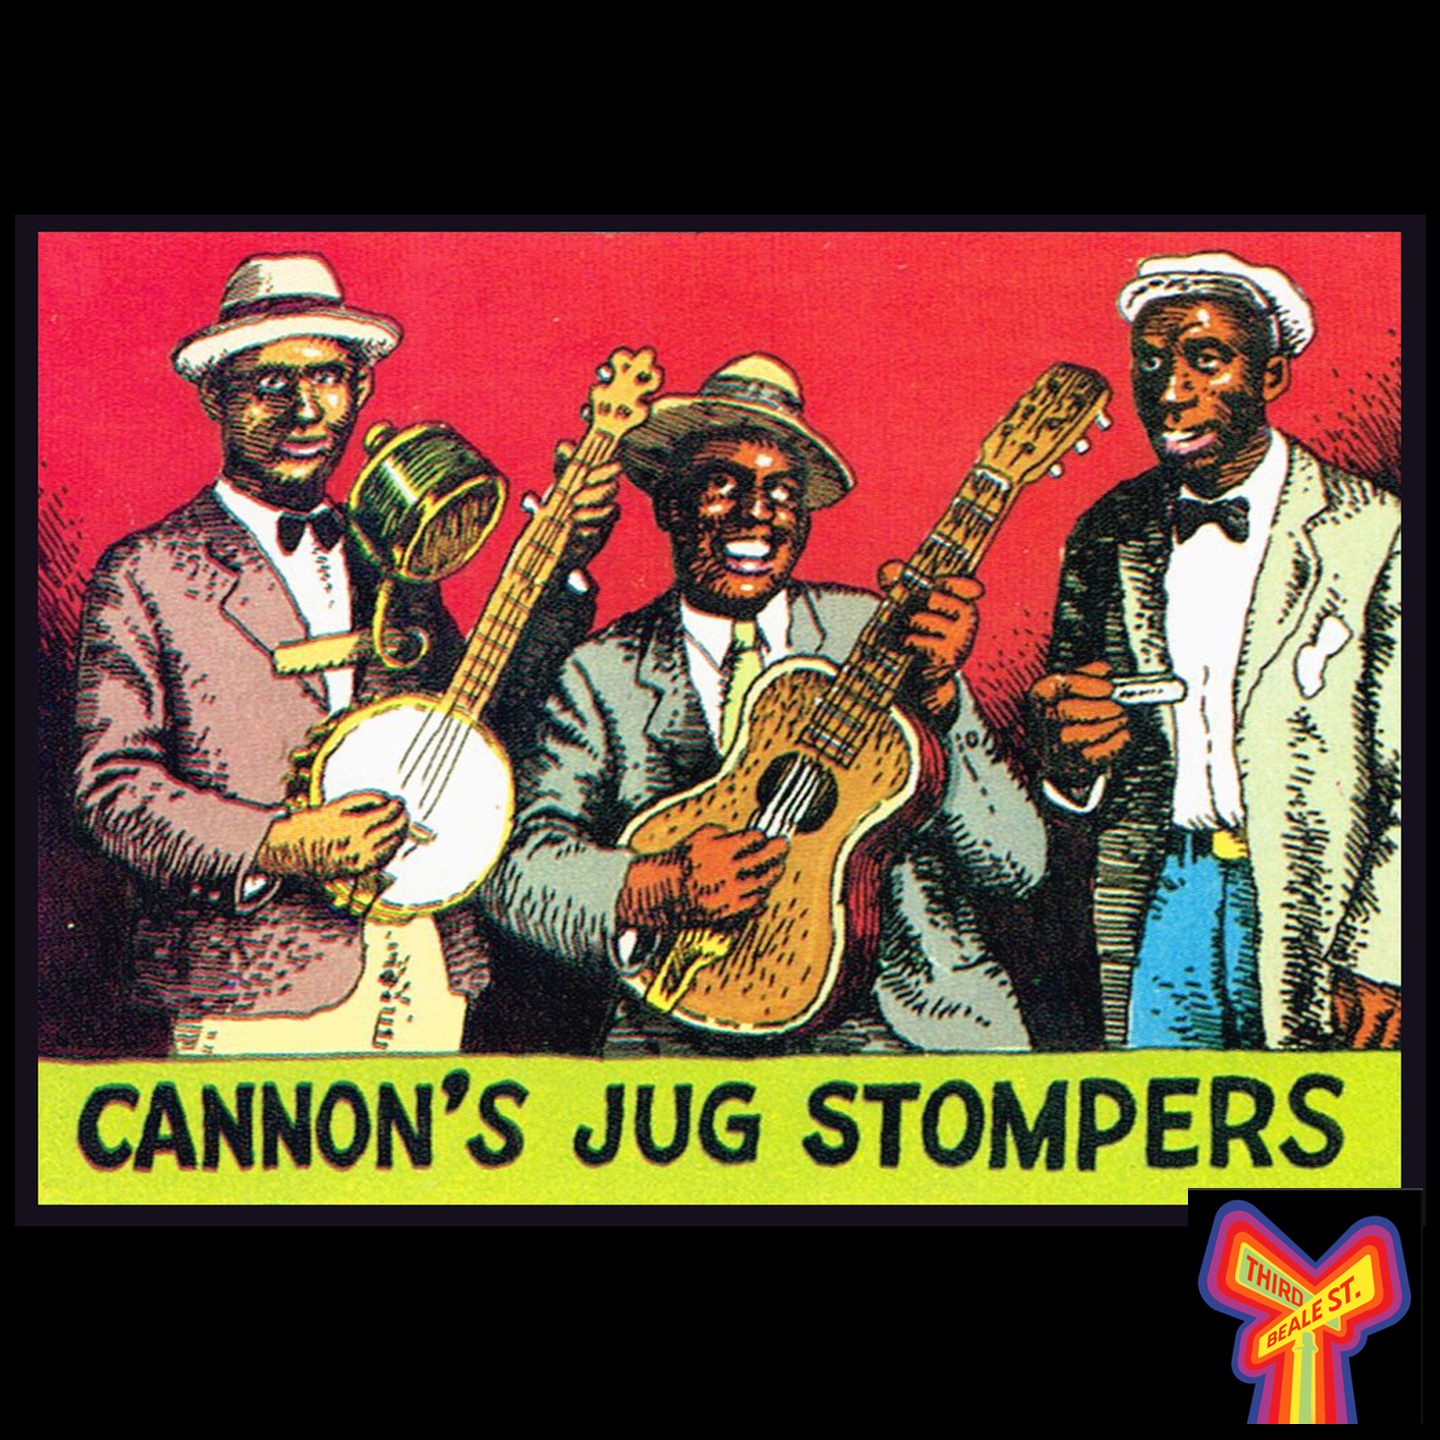 """Caption: After making his recording debut for Paramount in 1927, Gus Cannon teamed up with some old friends and formed """"Cannon's Jug Stompers,"""" who made their first sides as a group for Victor, in early 1928."""